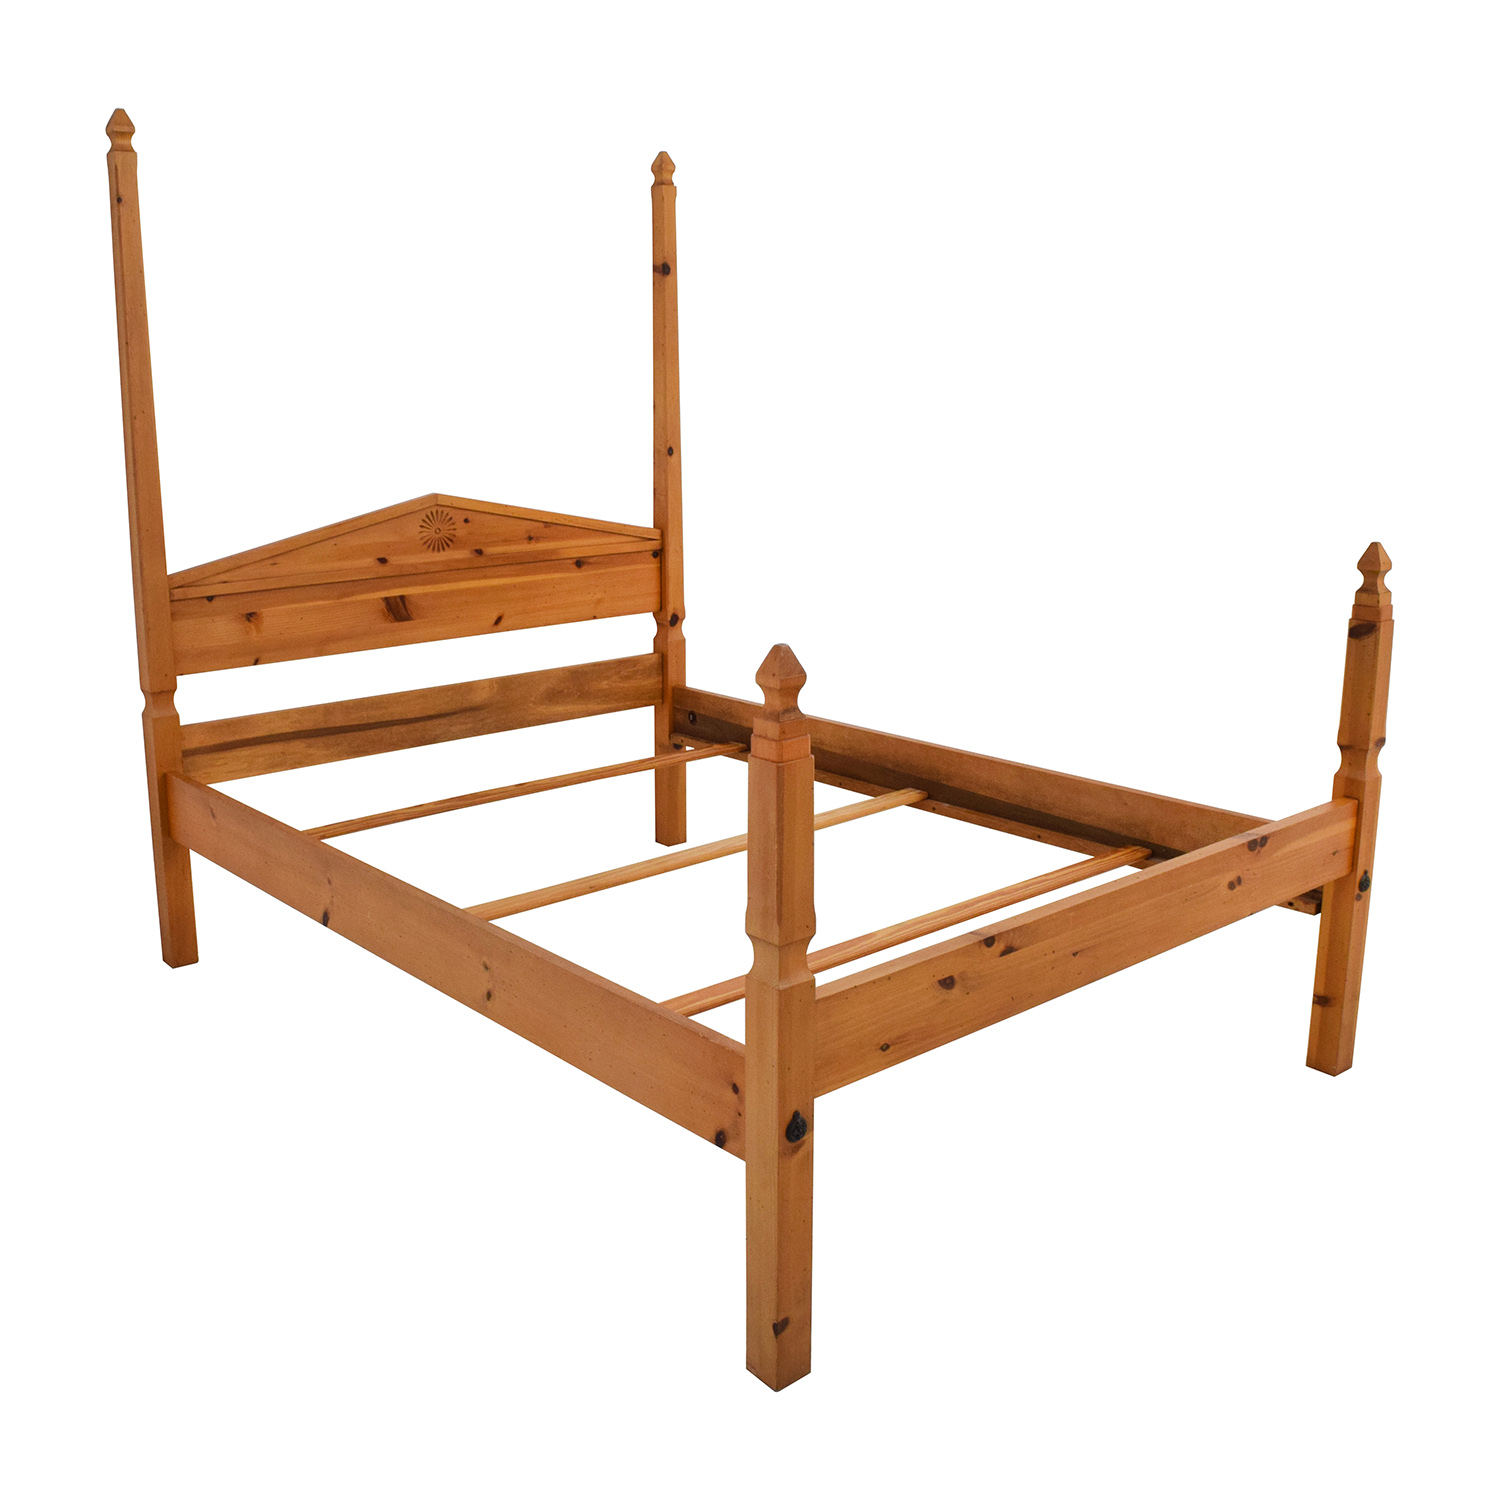 84 off pine four poster queen bed frame beds for Second hand bunk beds